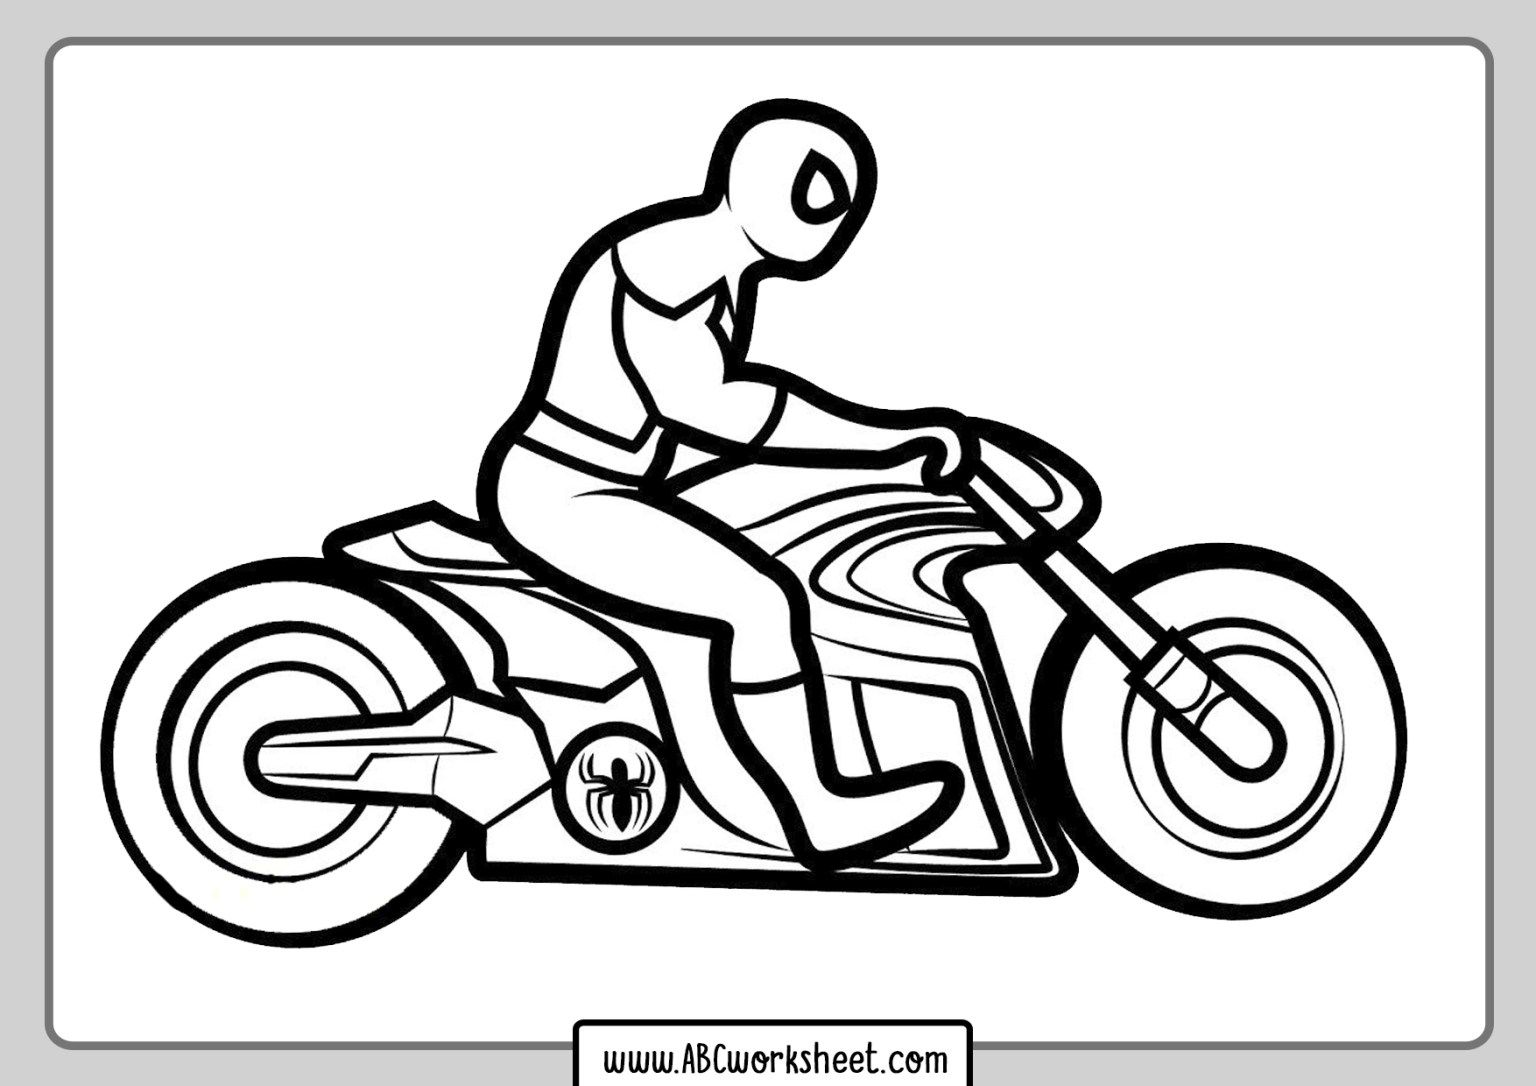 Free Printable Motorcycle Coloring Pages For Kids In 2020 Spiderman Coloring Coloring Pages Bunny Coloring Pages